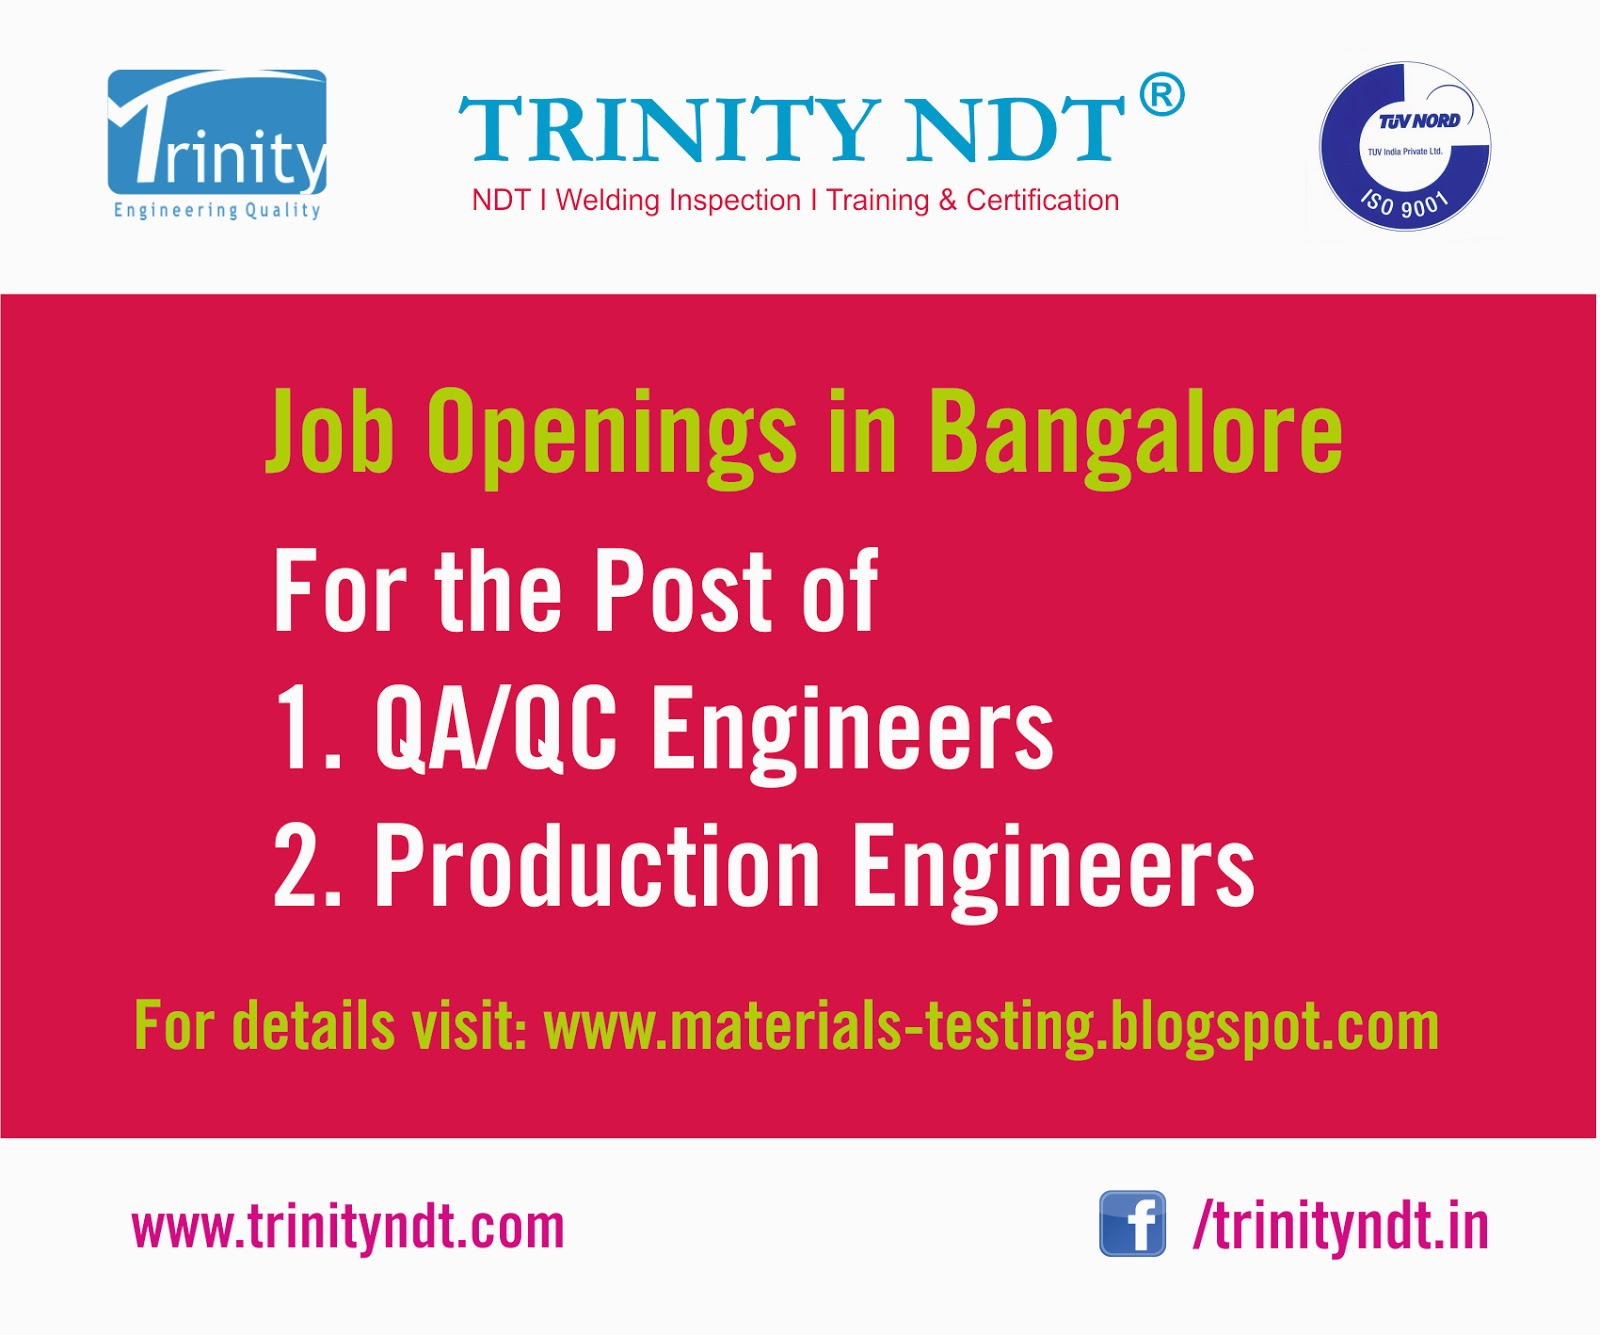 qaqc jobs in fabrication shop for mechanical engineers in bangalore - Production Engineering Job